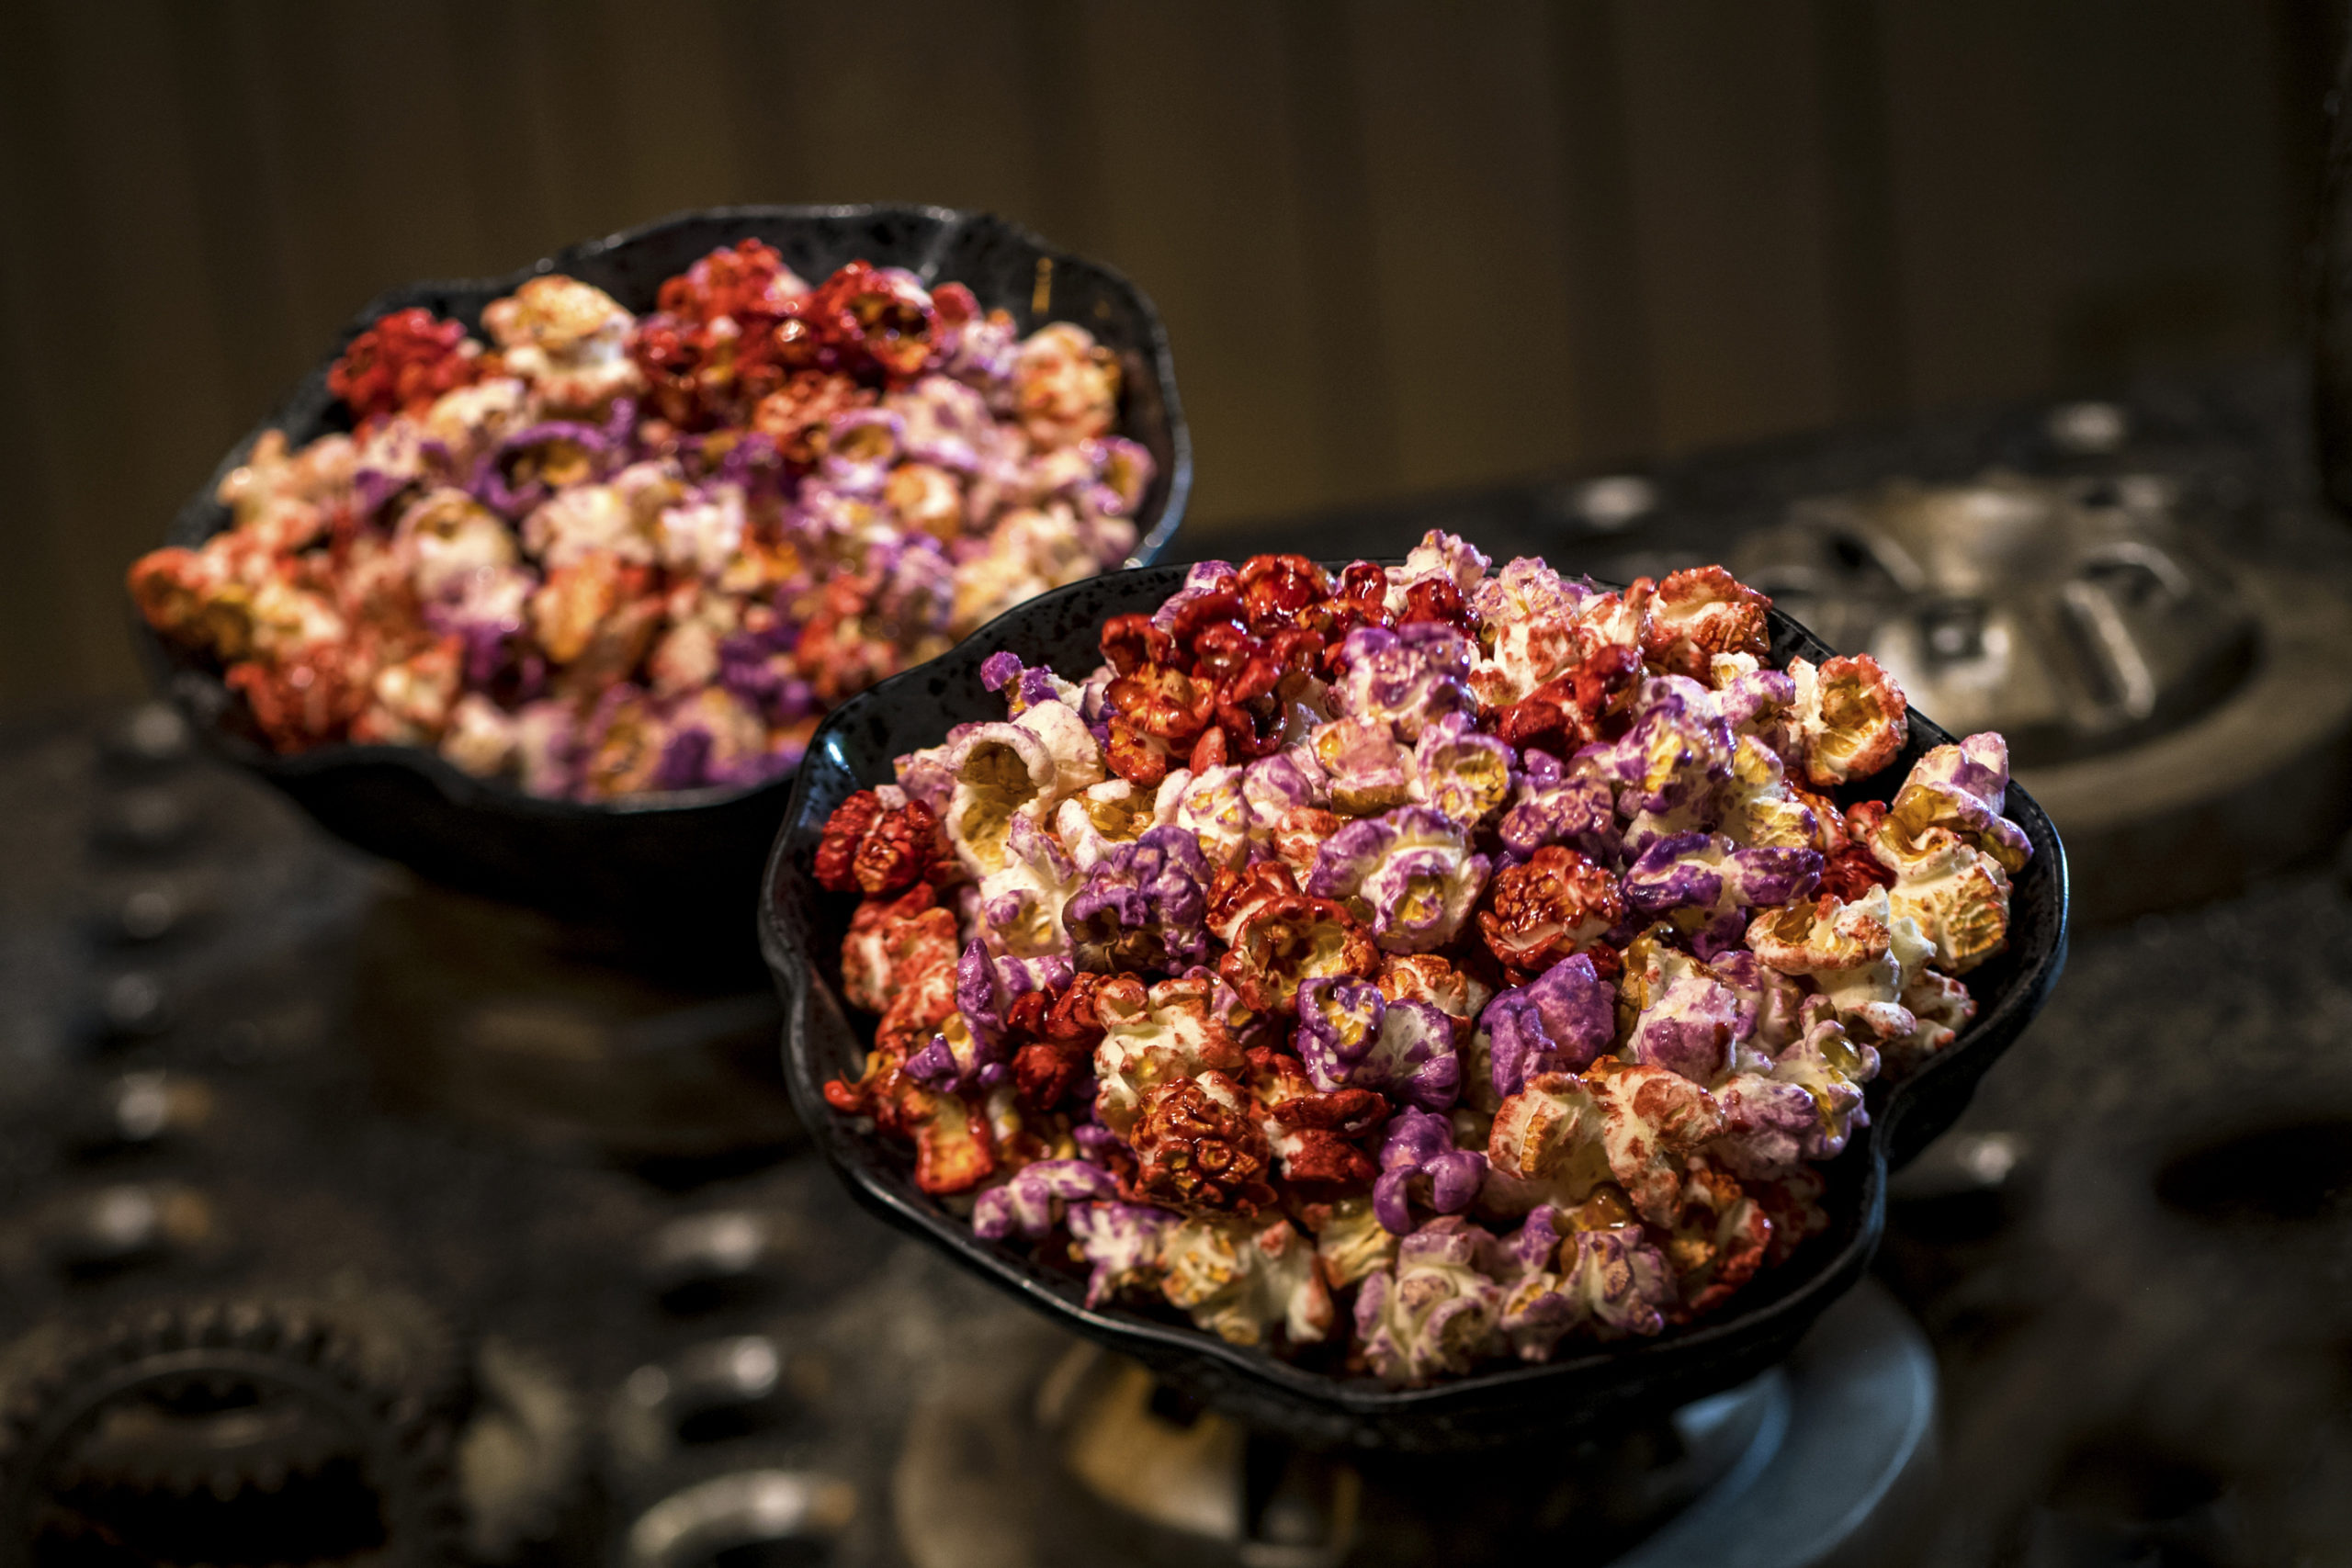 Disneyland dining includes lots of yummy snacks.